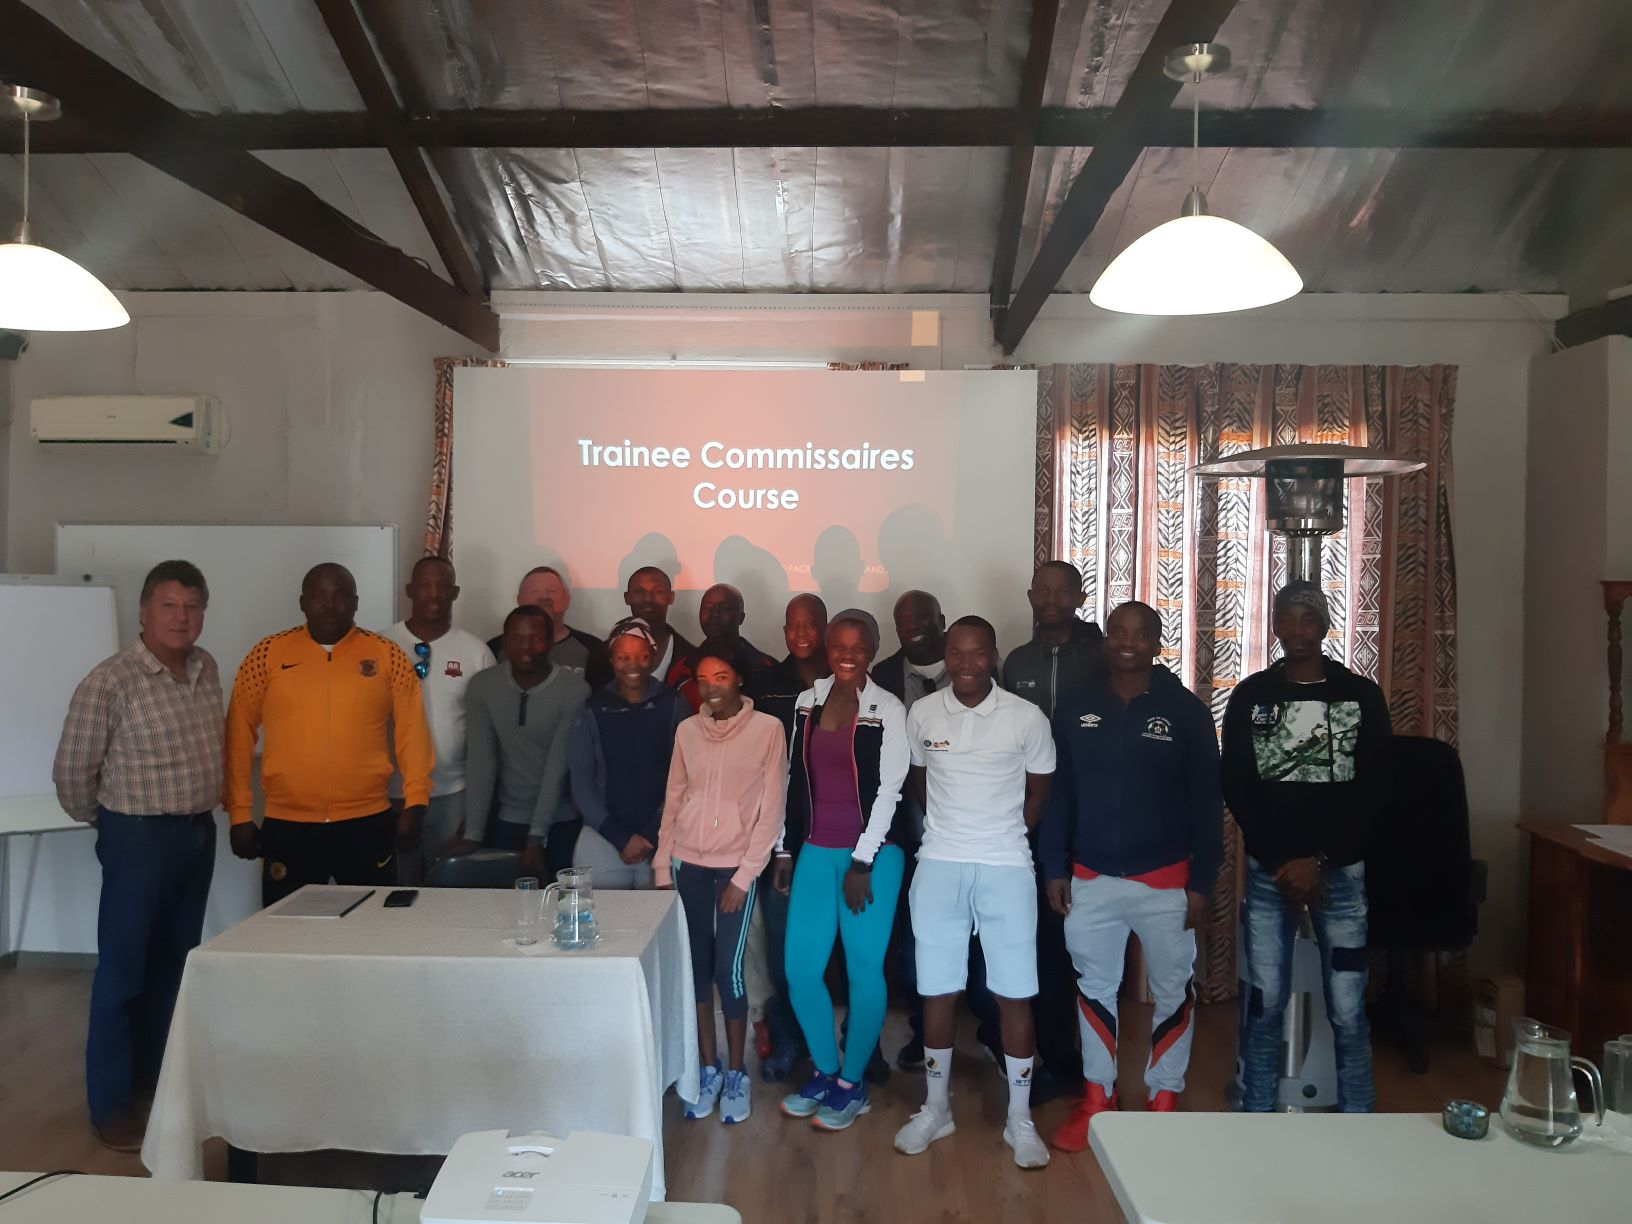 Cycling SA's Technical Commission Chair, Wynand Pretorius, with the candidates from KwaZulu-Natal and Gauteng who recently attended the National Commissaire's Course, hosted by Cycling South Africa and KZN Cycling with the support of KwaZulu-Natal Sport and Recreation in Howick from 10-11 August 2019.